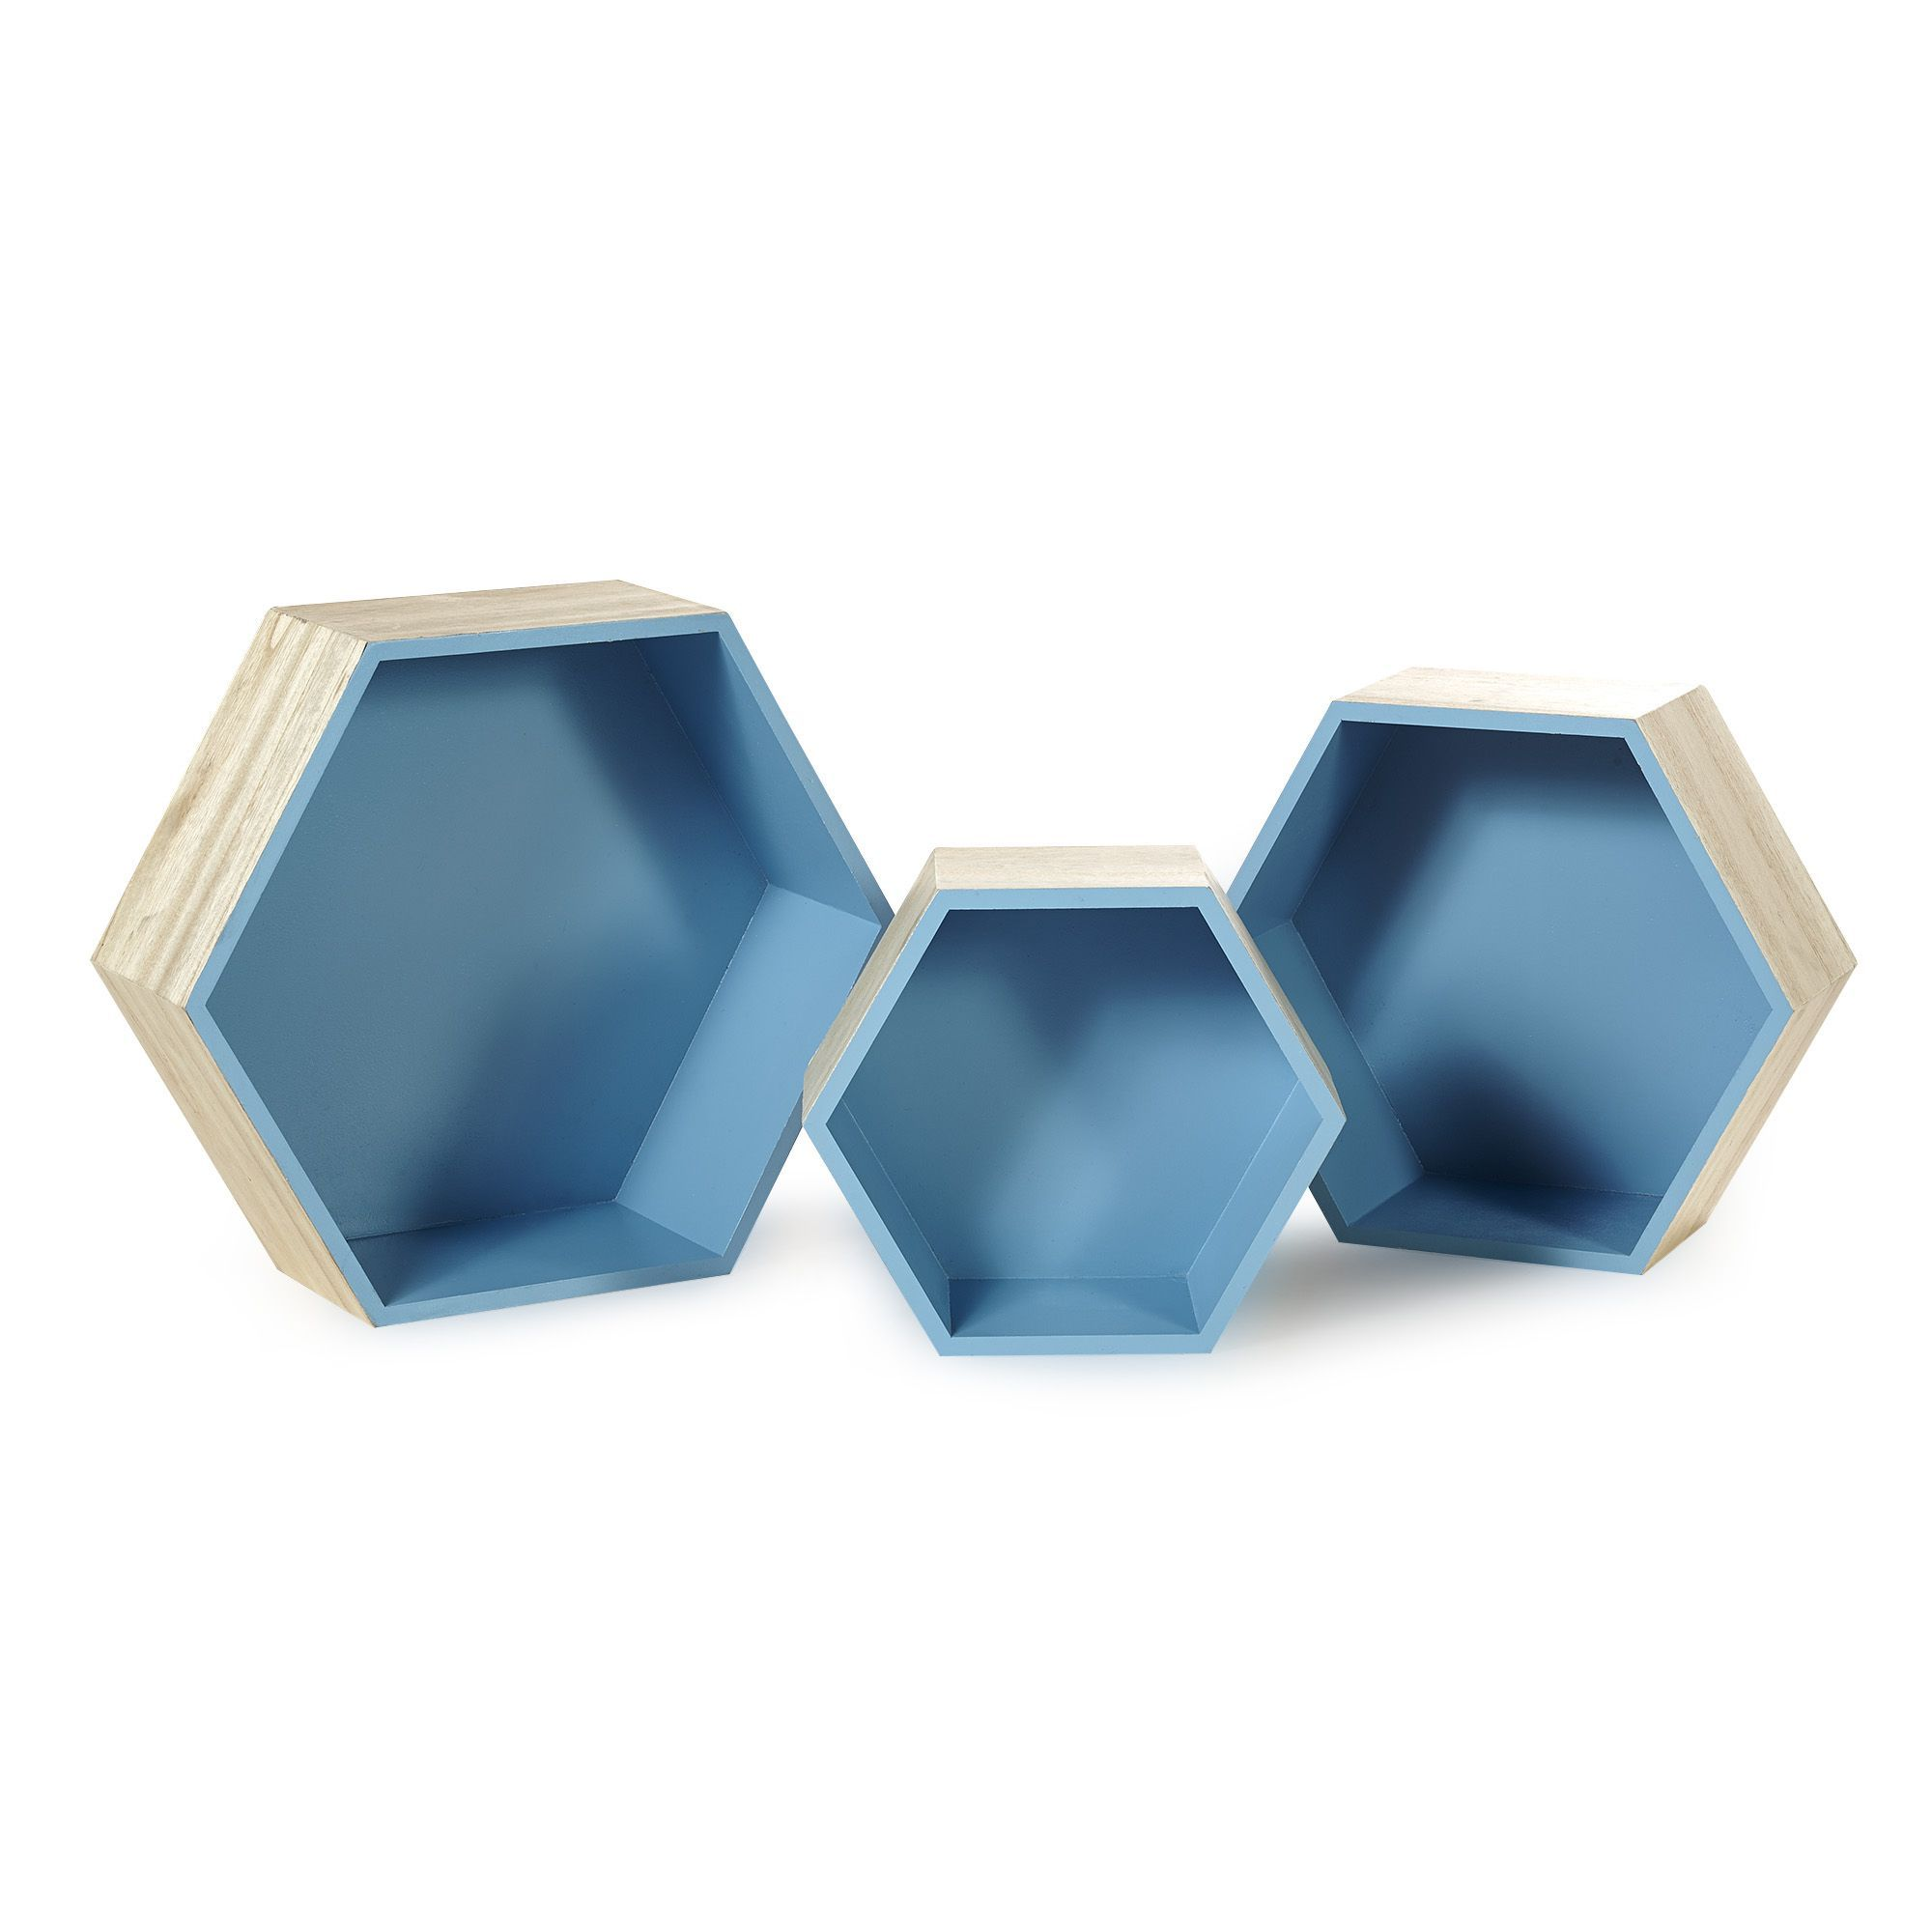 Etagere Hexagonale Grand Modele Rush Decoration Murale Affiches